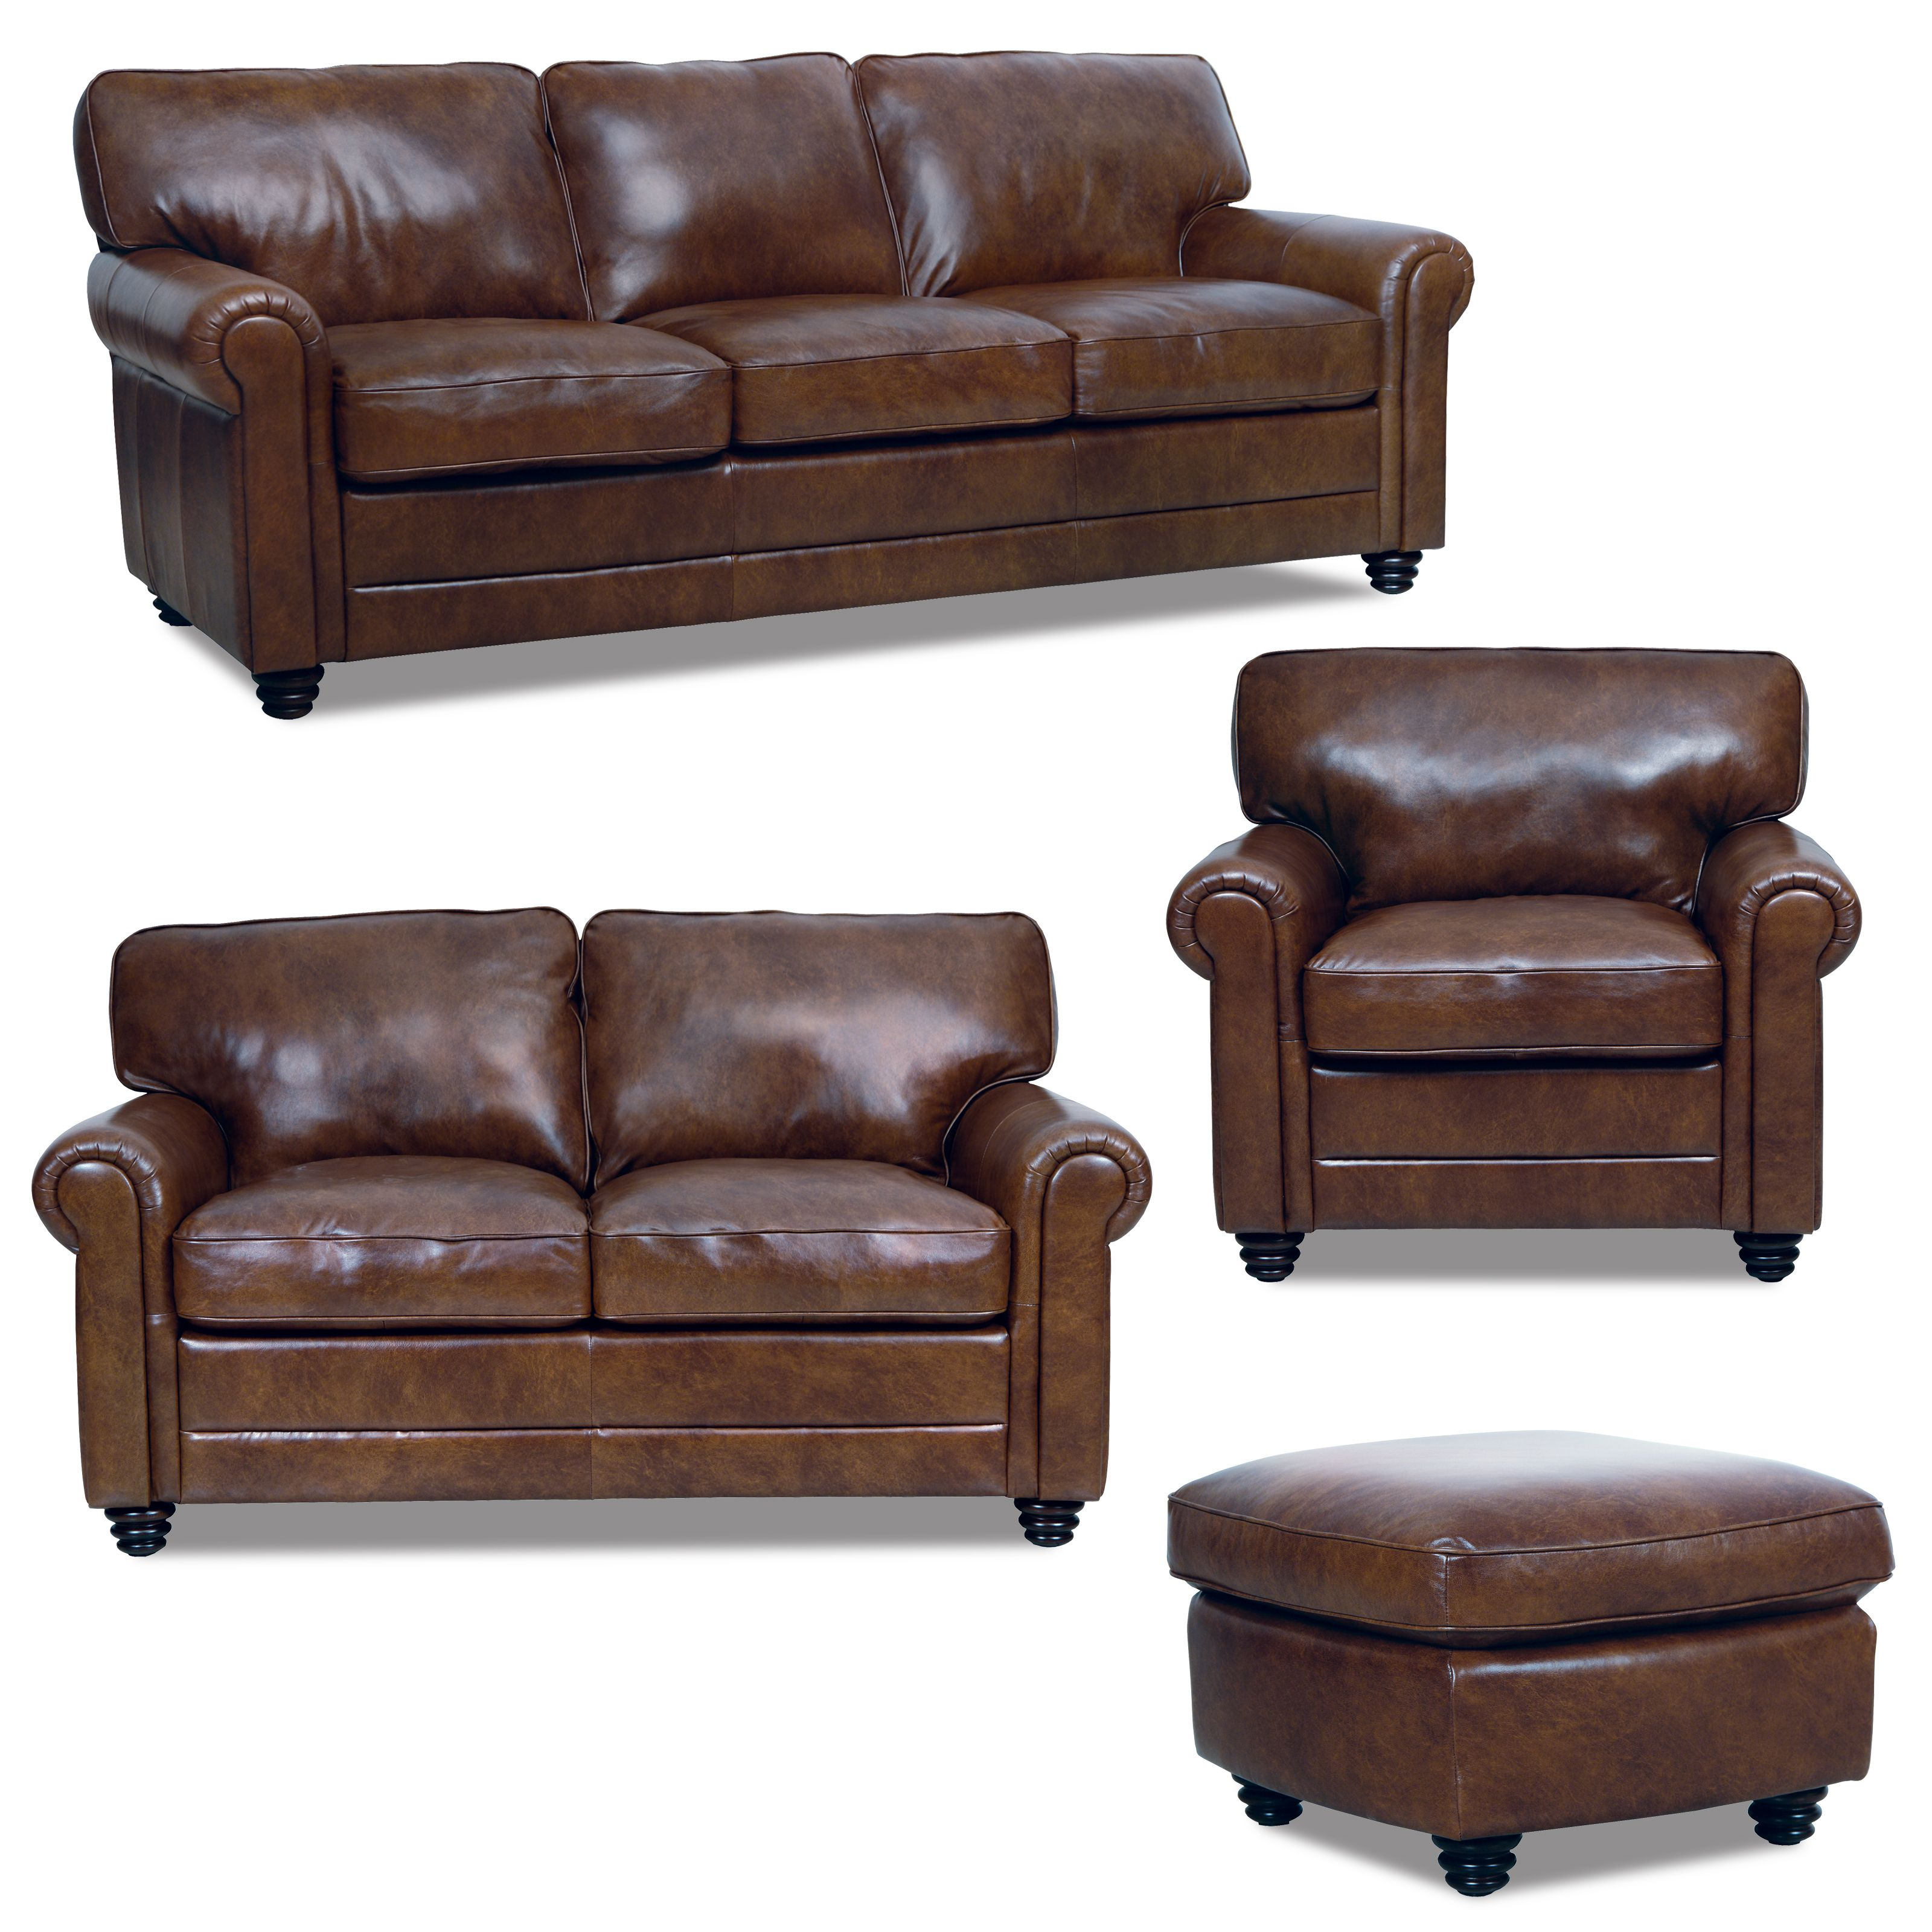 Andrew 4pc Set From Luke In Havana Leather Couch Loveseat Leather Sofa Couch Love Seat